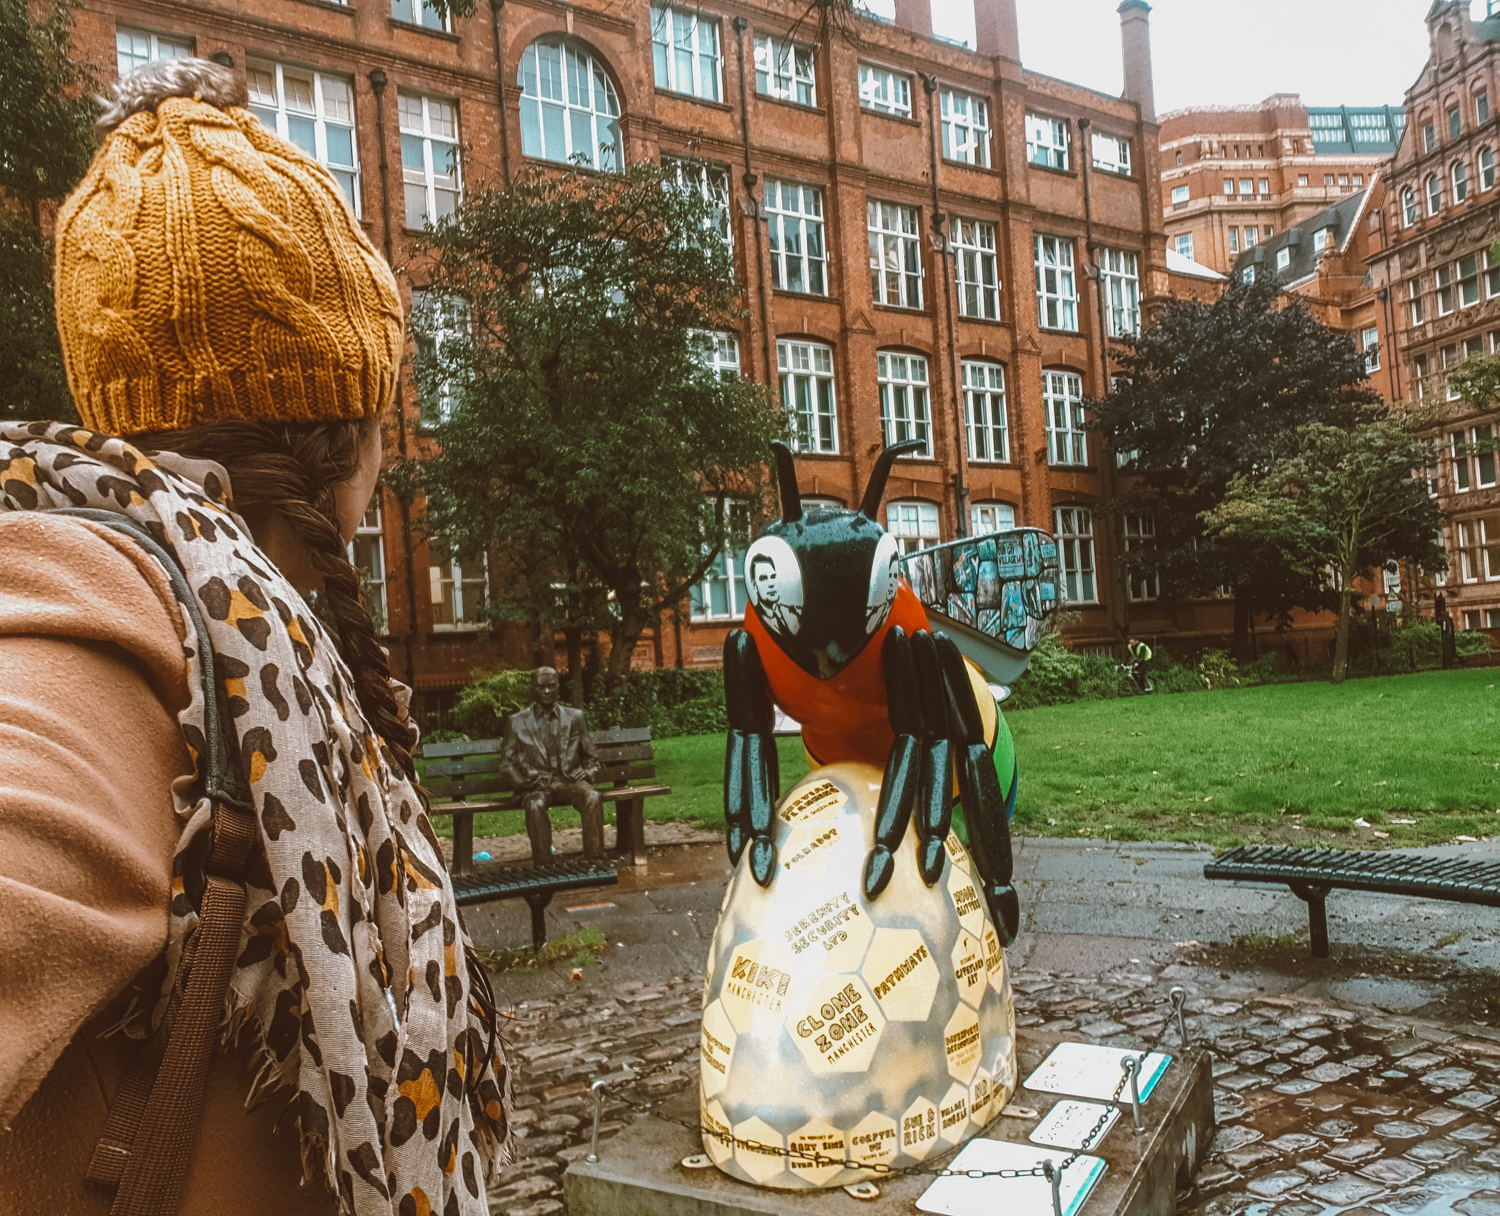 Alan turing memorial and LGBTQ bee in Manchester